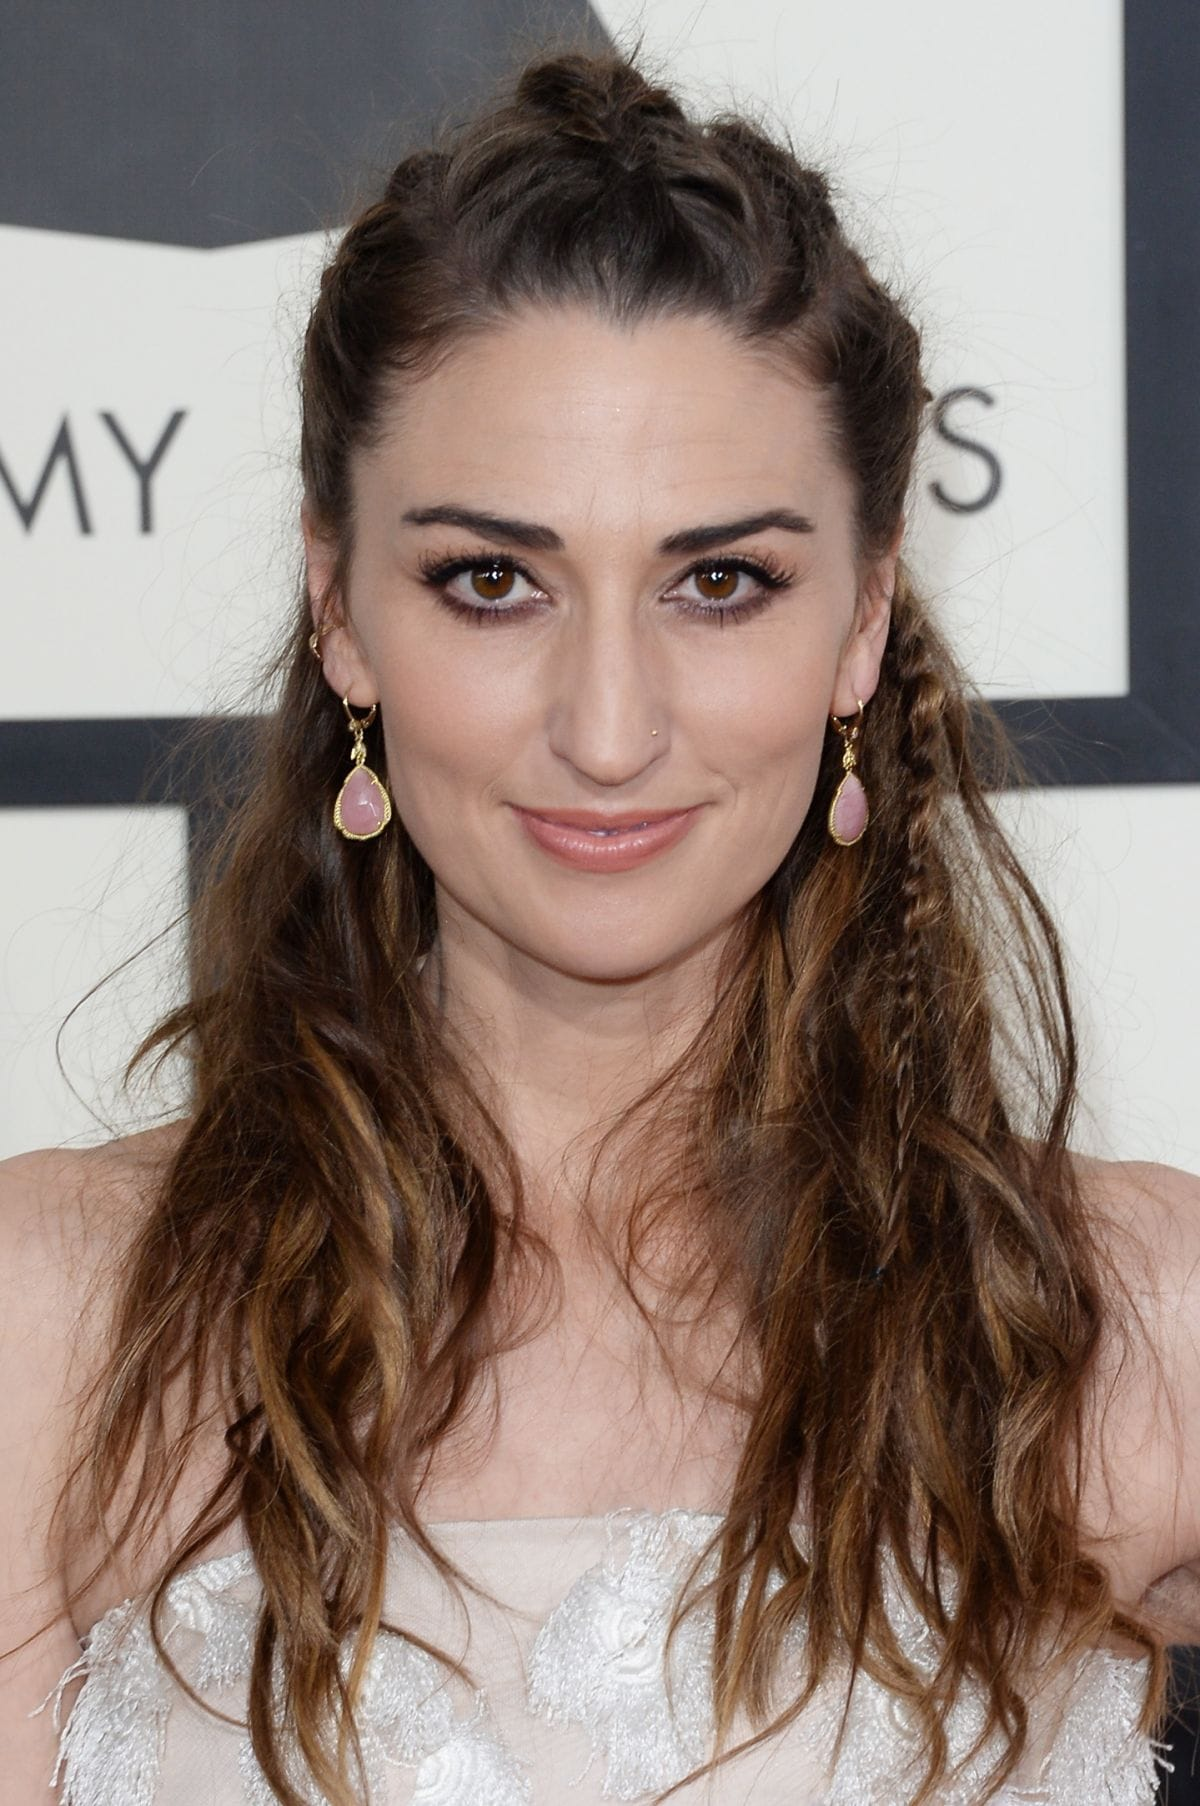 Sara Bareilles HQ wallpapers